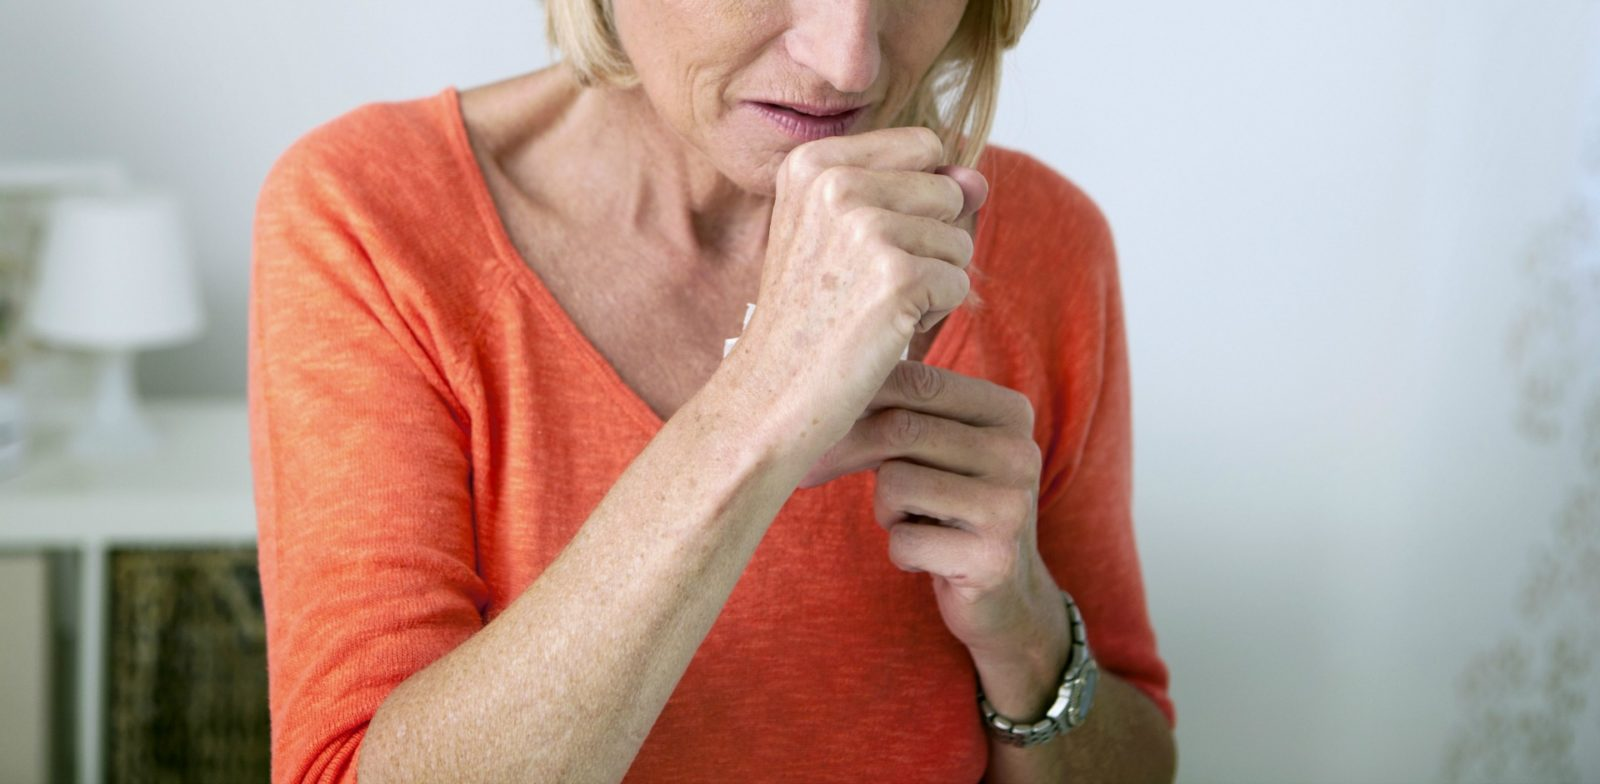 If a cough lasts for more than two weeks, it's time to talk to a health professional.